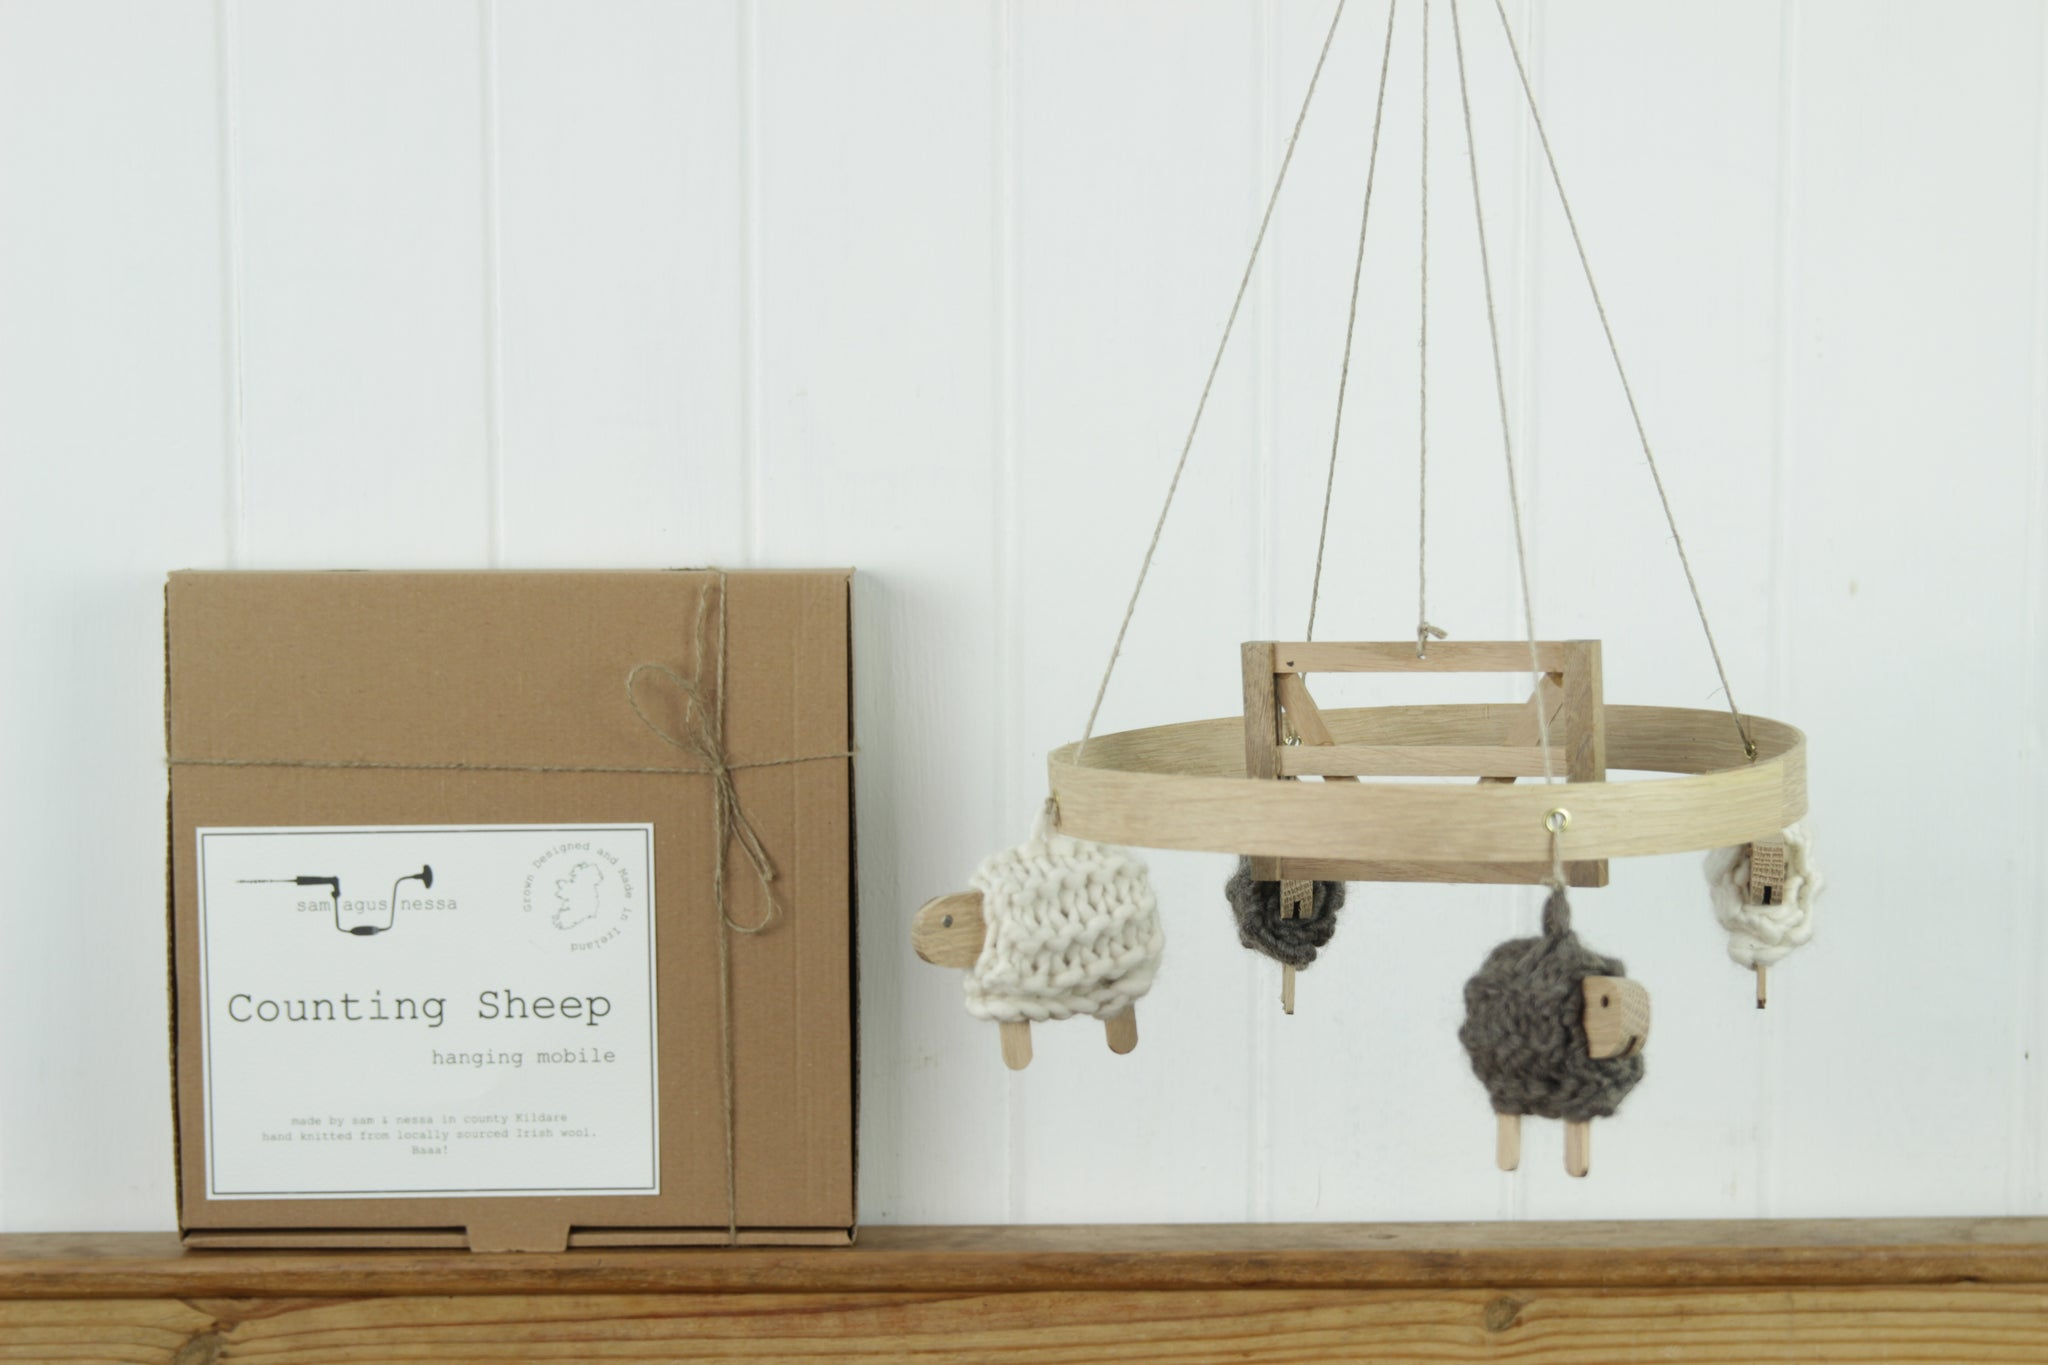 Hanging Mobile, Counting Sheep, Sam Agus Nessa